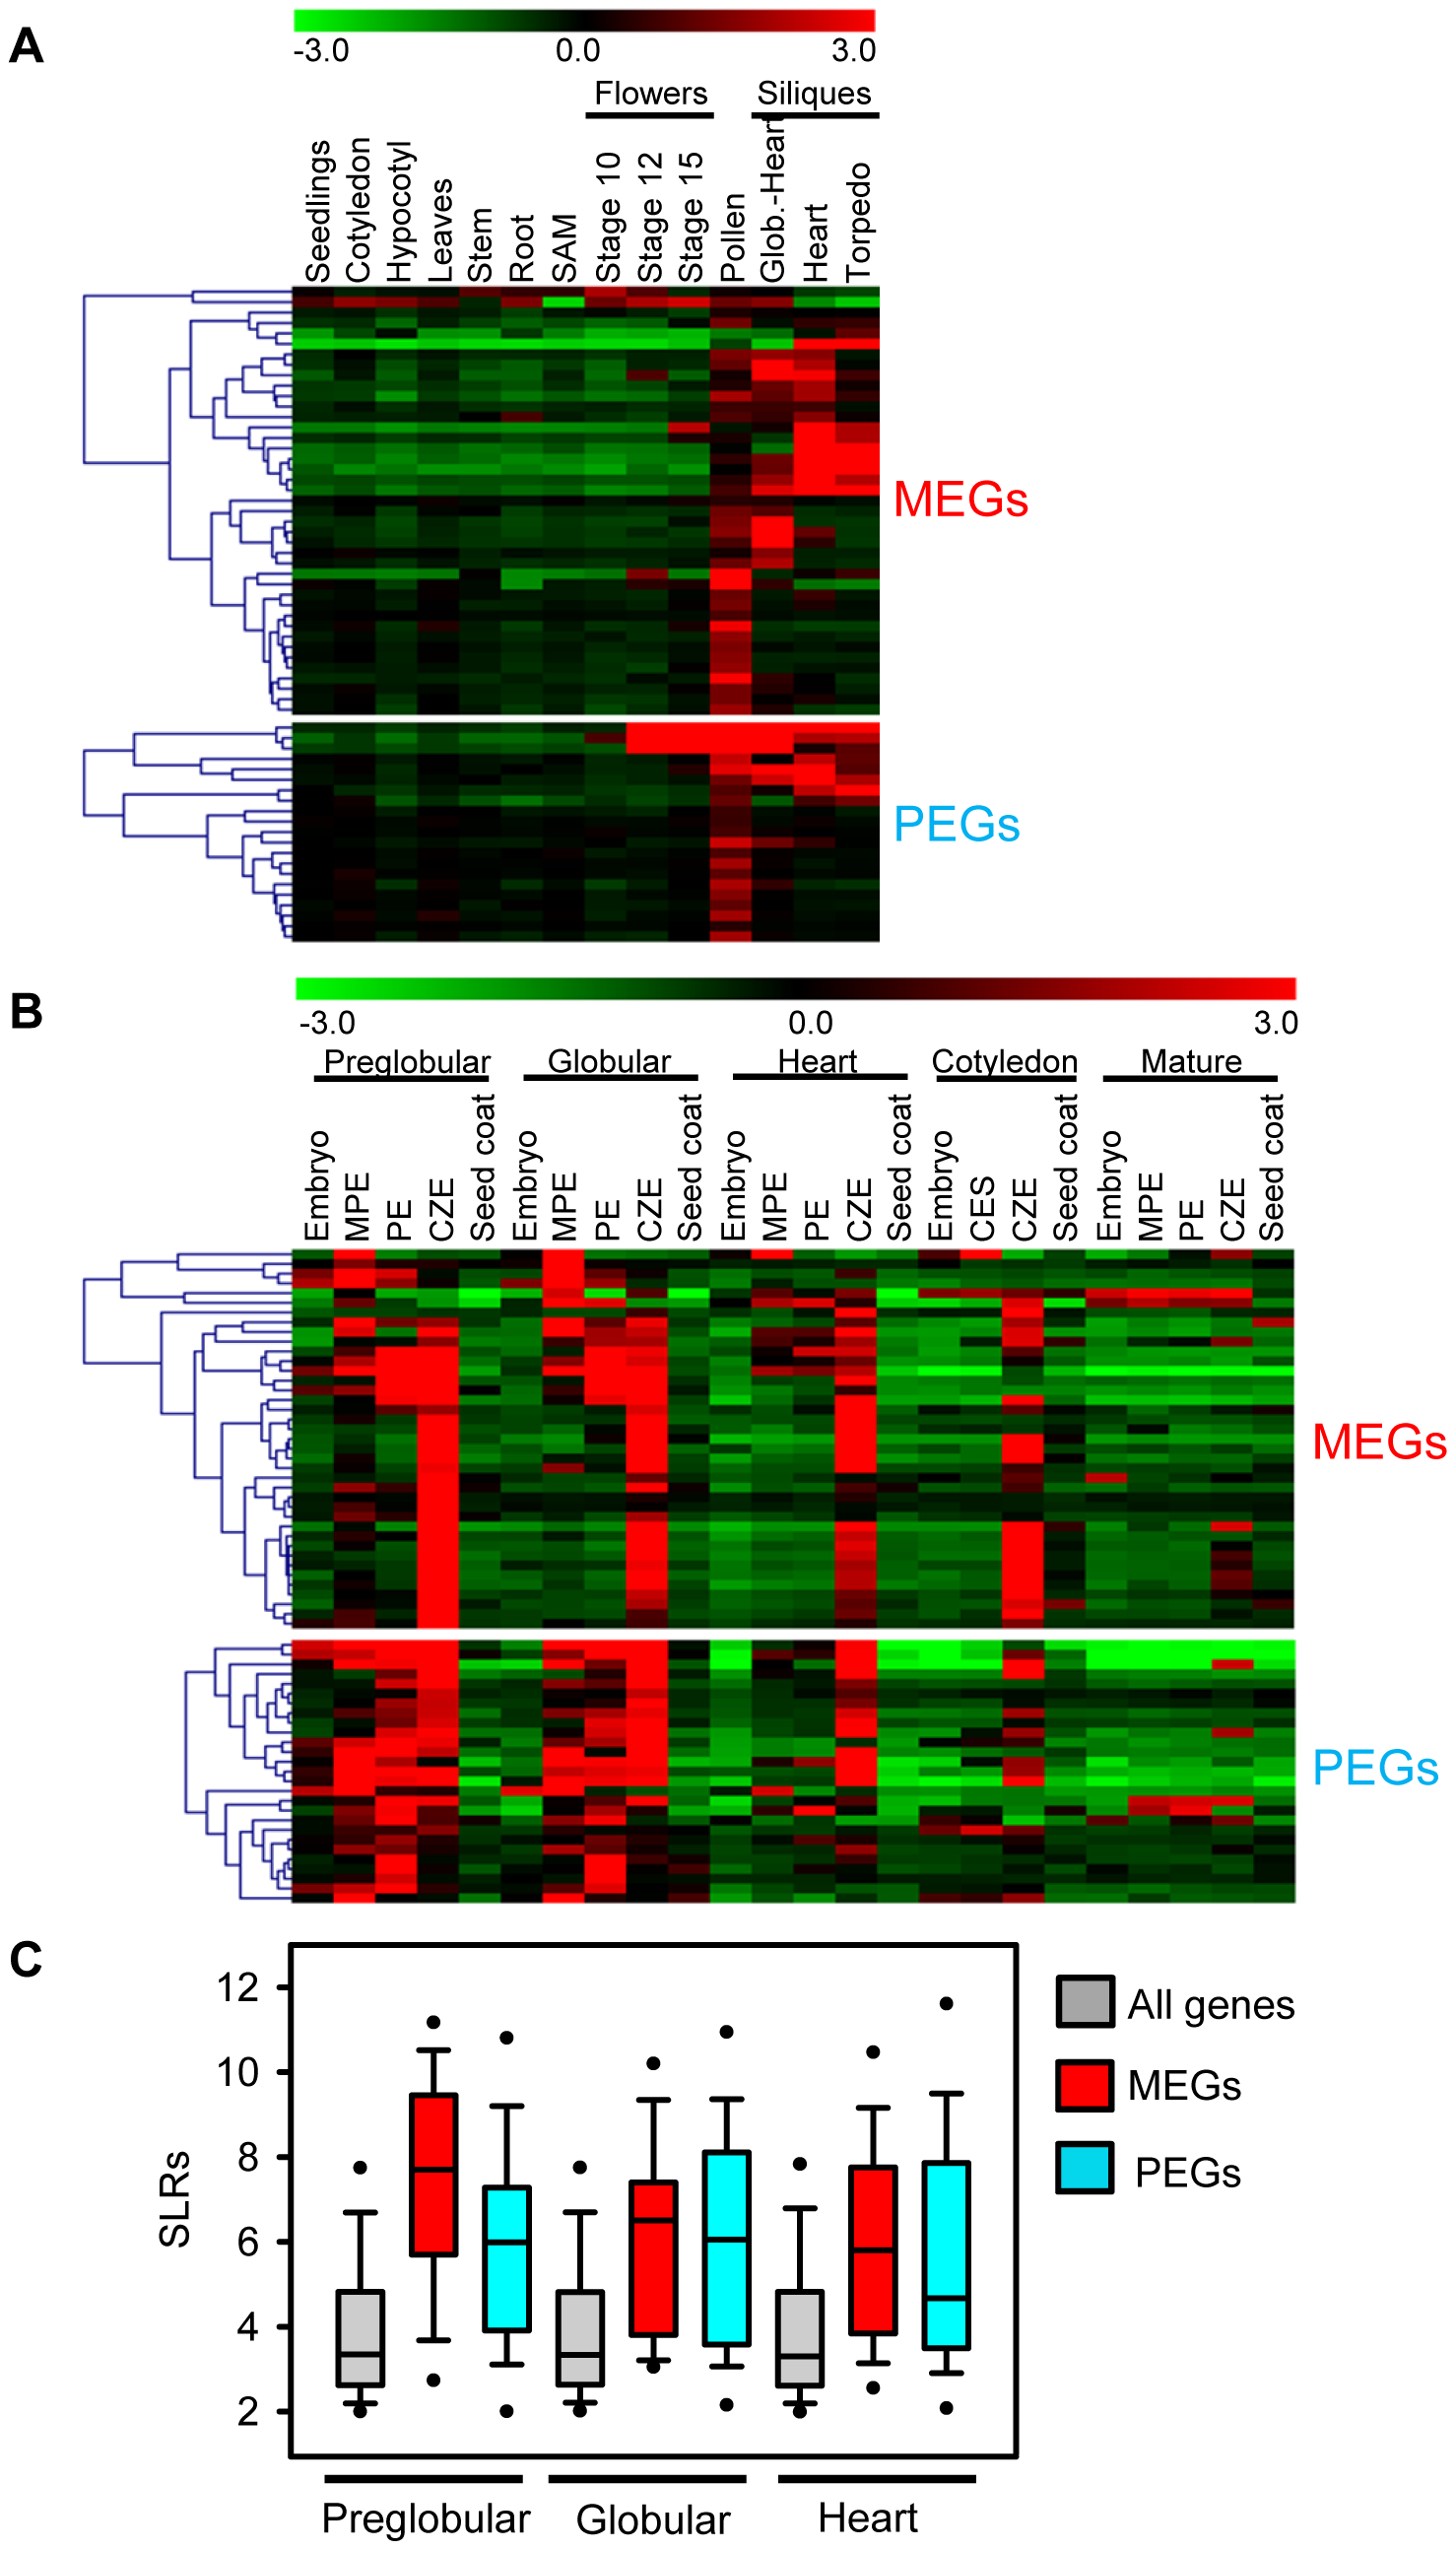 Expression Analysis of MEGs and PEGs in Vegetative and Seed Tissues.